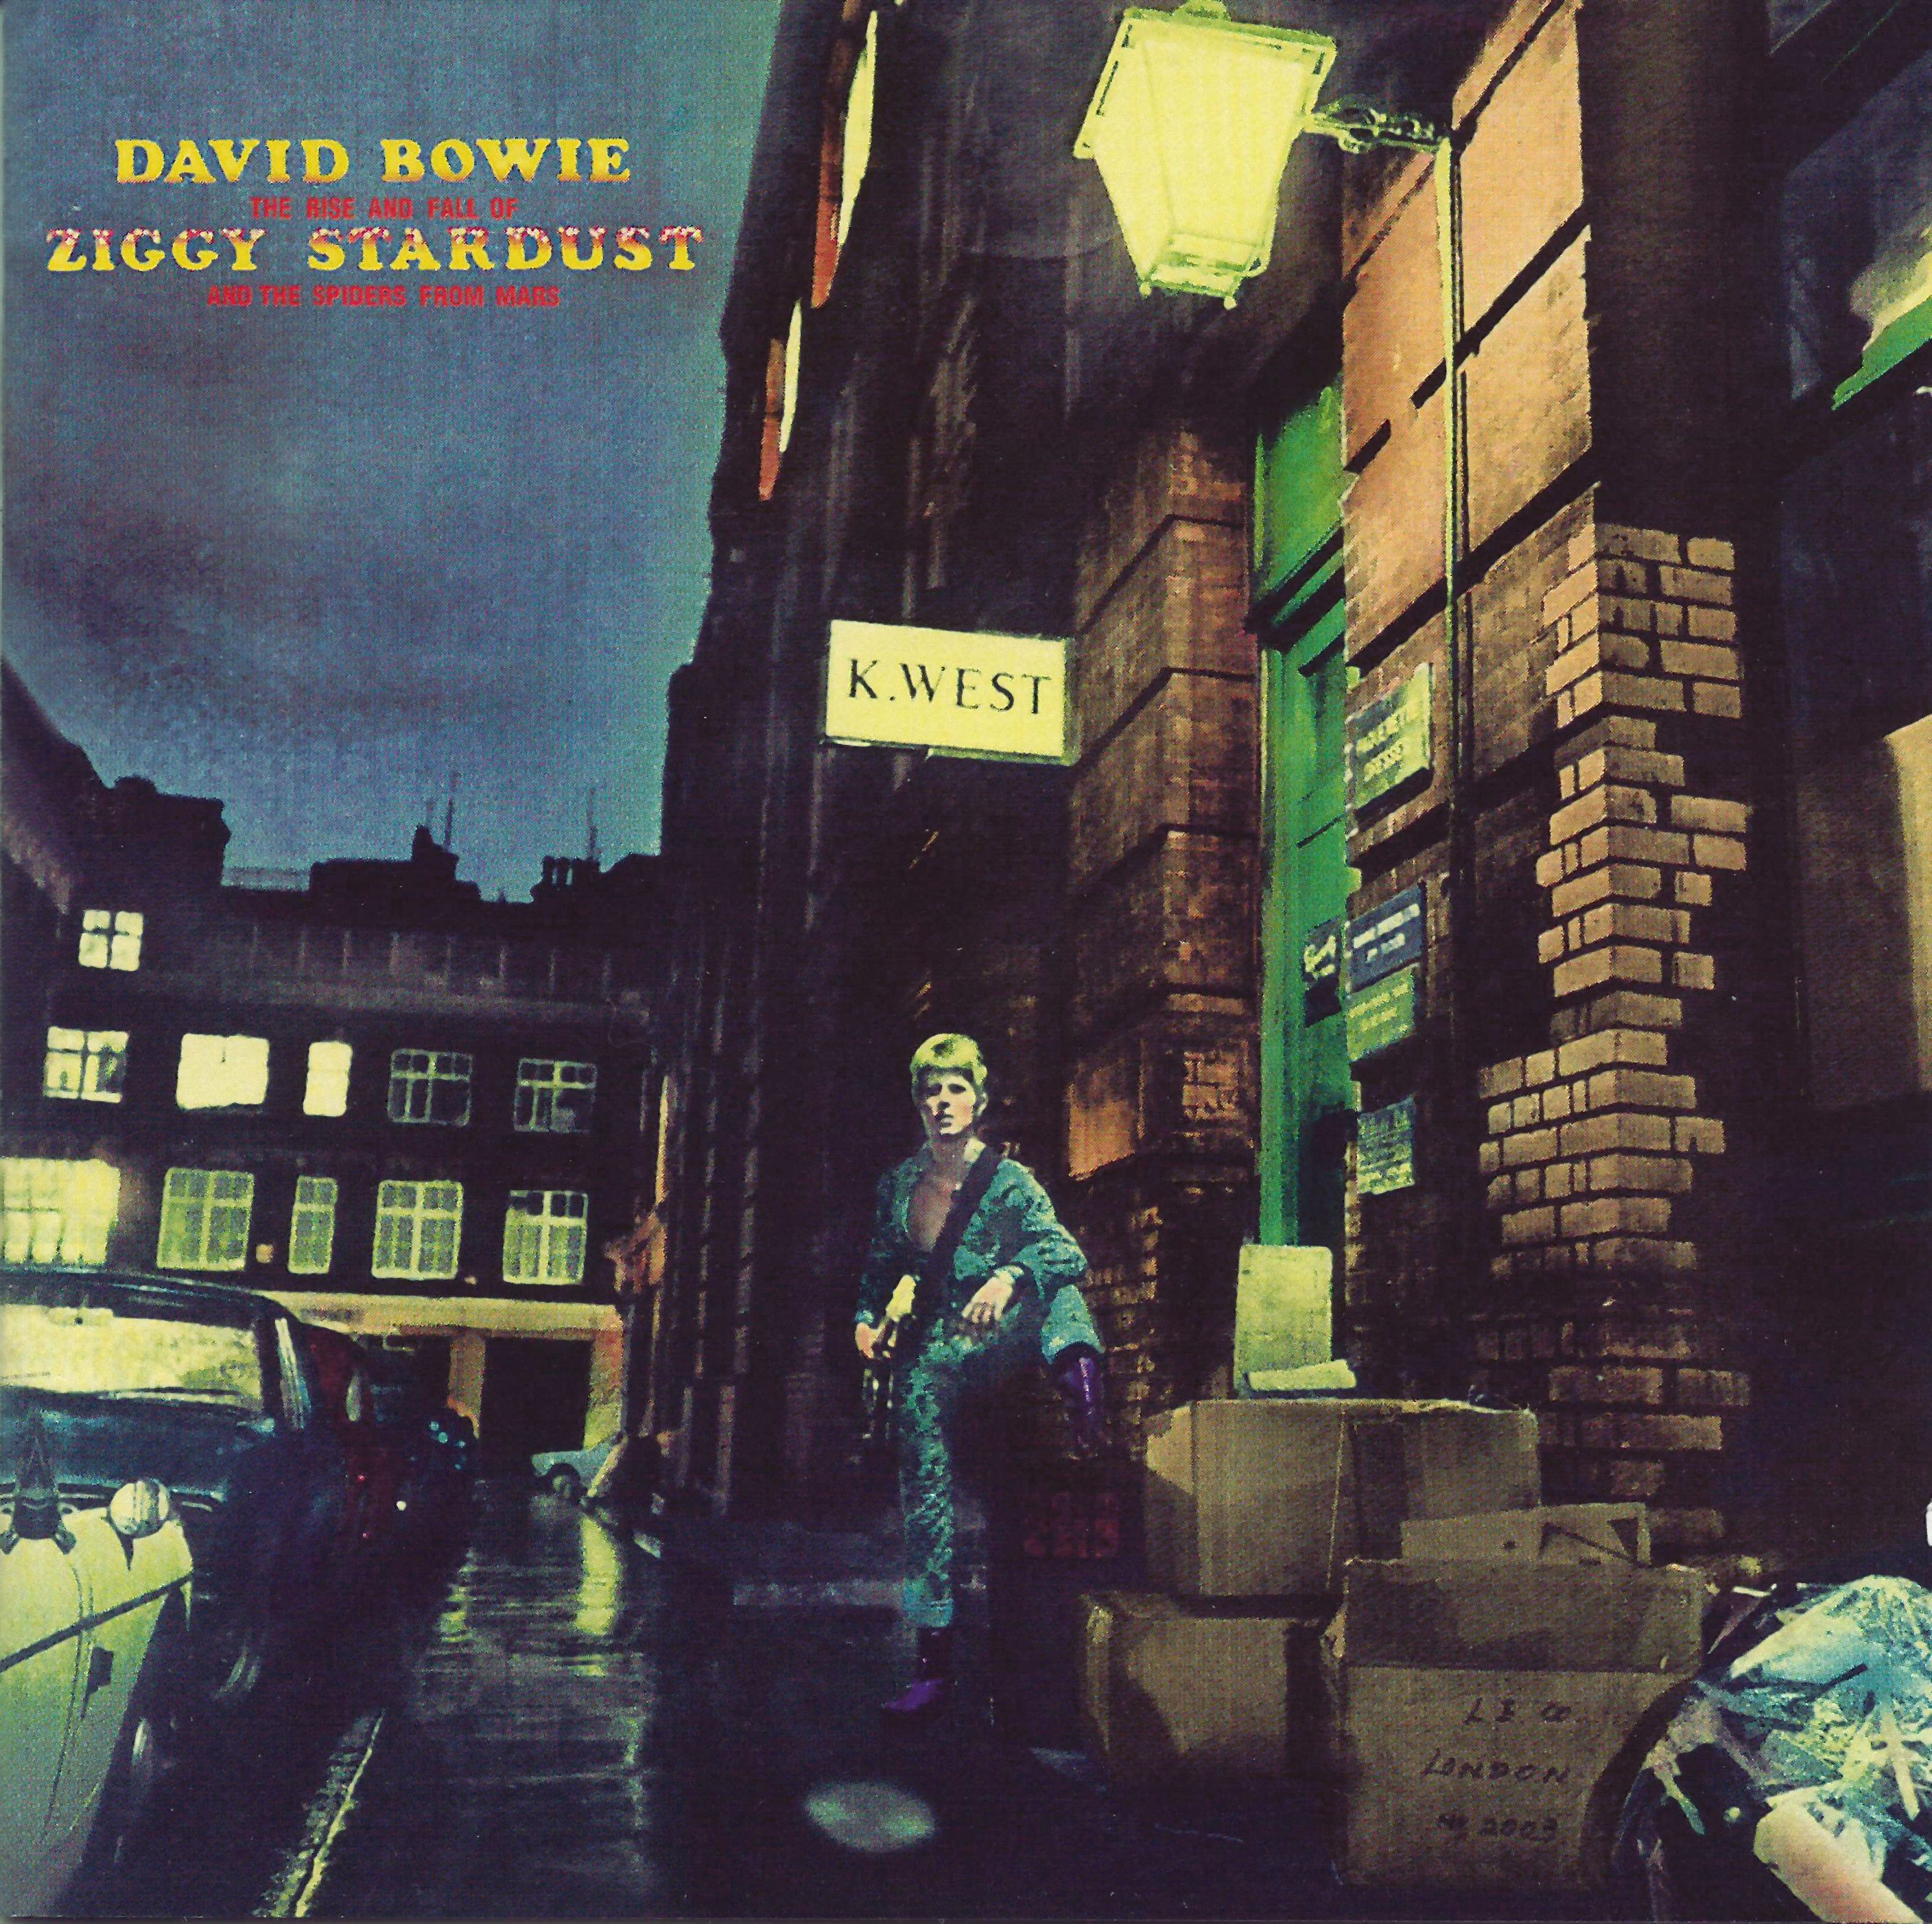 David Bowie - The Rise And Fall Of Ziggy Stardust album cover